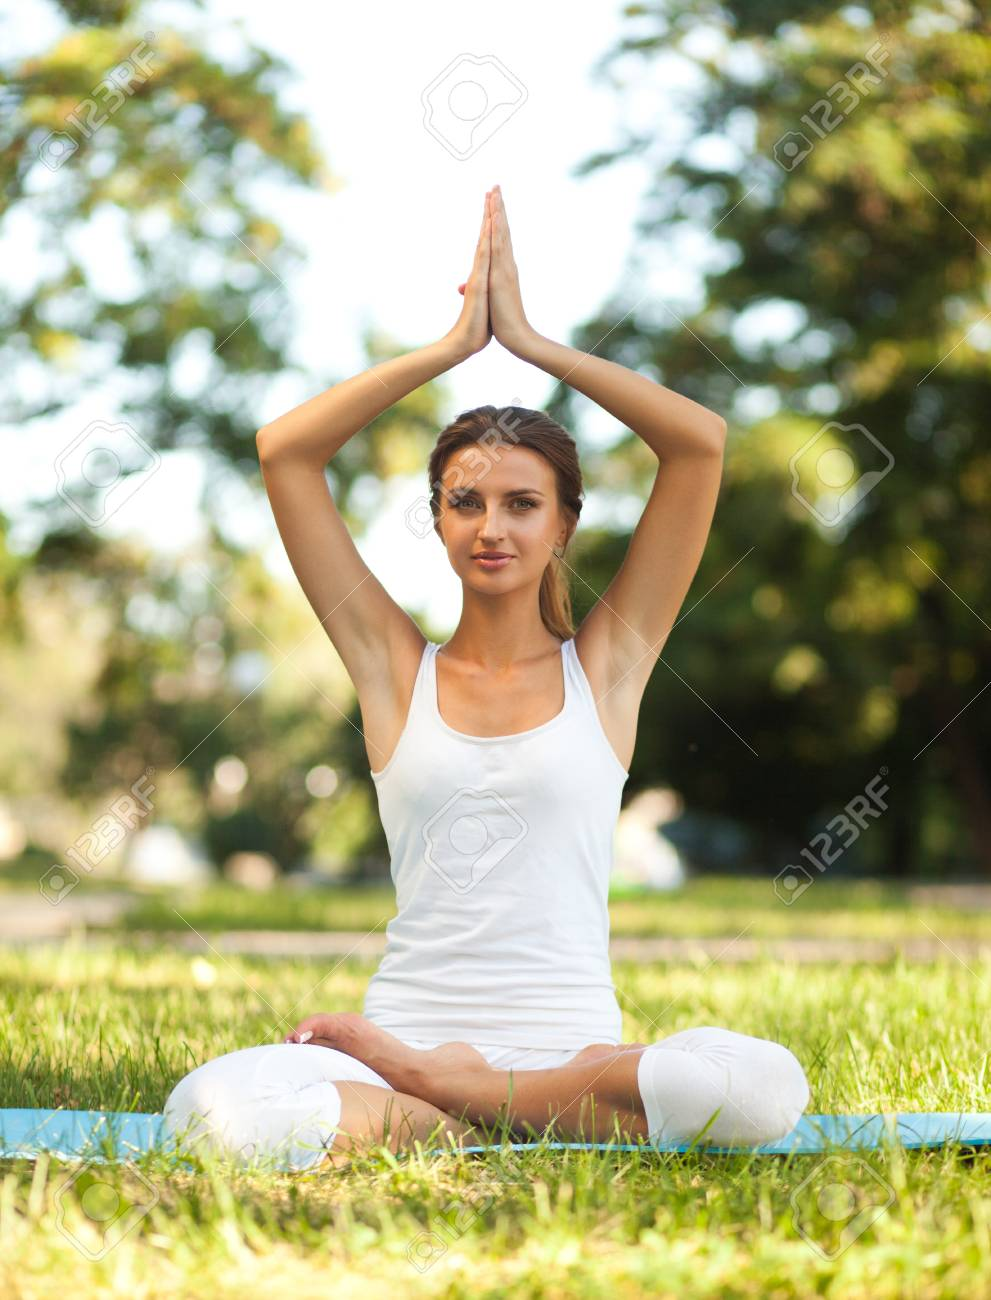 Lotus Pose With Hands Over Head